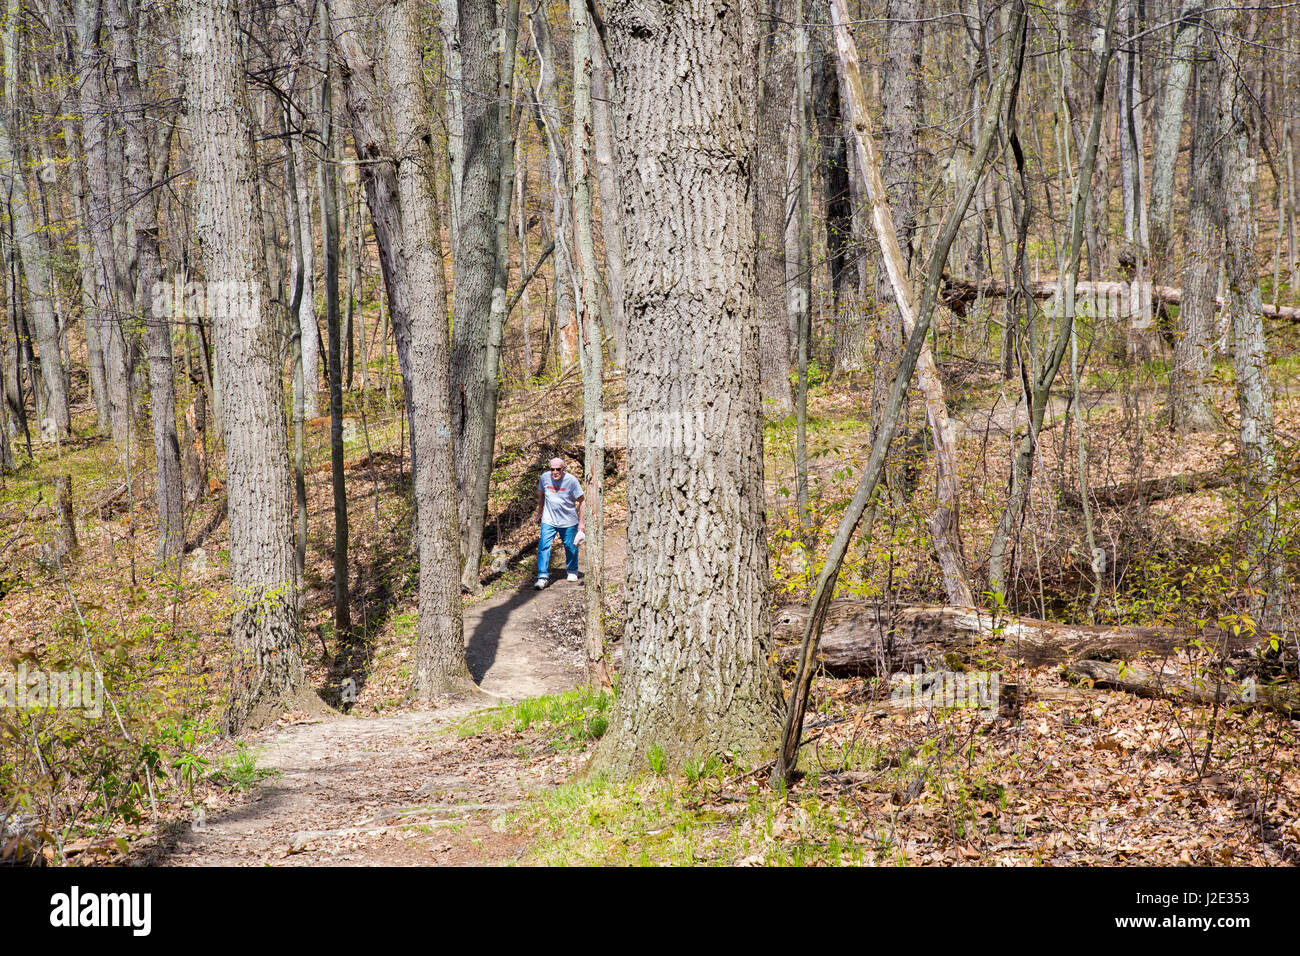 Holly, Michigan - A senior citizen hiking in Seven Lakes State Park on a warm spring day. - Stock Image